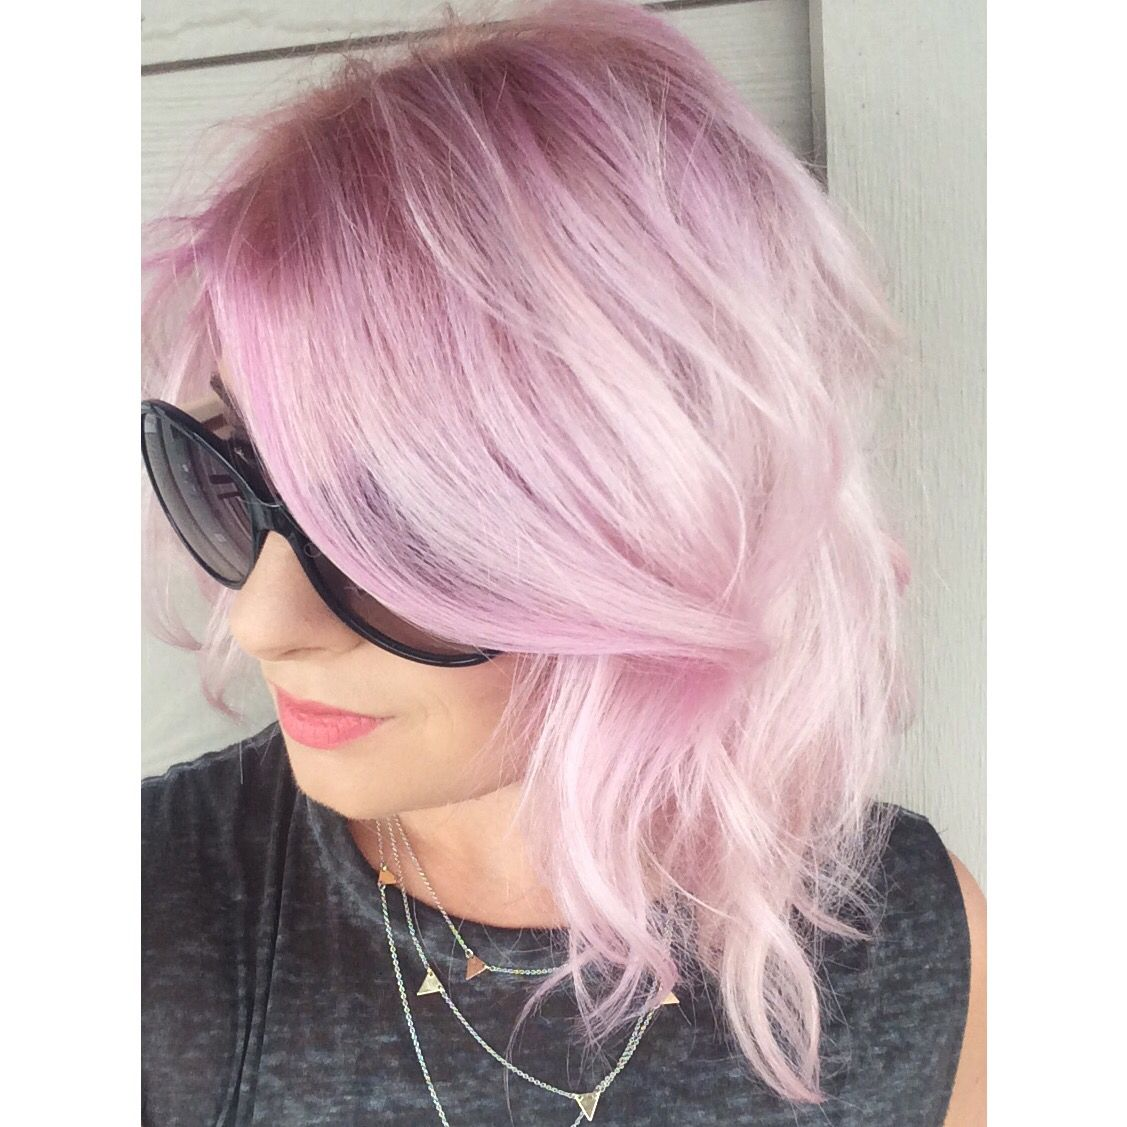 Pastel Pink Hair Pravana S Paul Mitchell Ink Scruples Instagram Heatheryacendahair